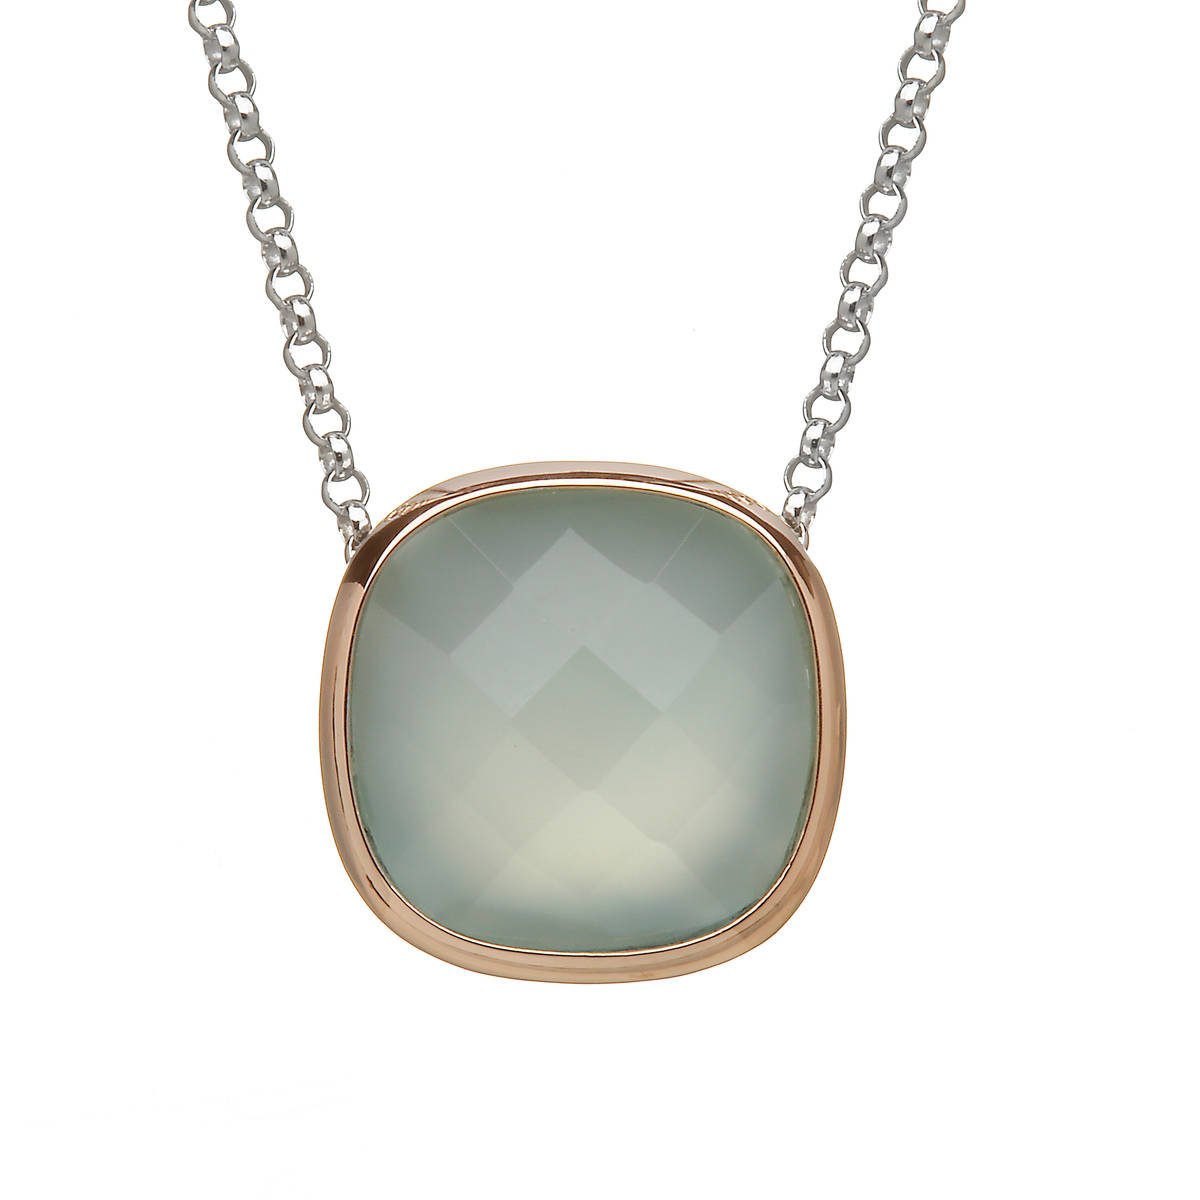 House of Lor silver/rose gold pendant with blue chalcedony stone outer rim made from rare Irish goldipck/oapck